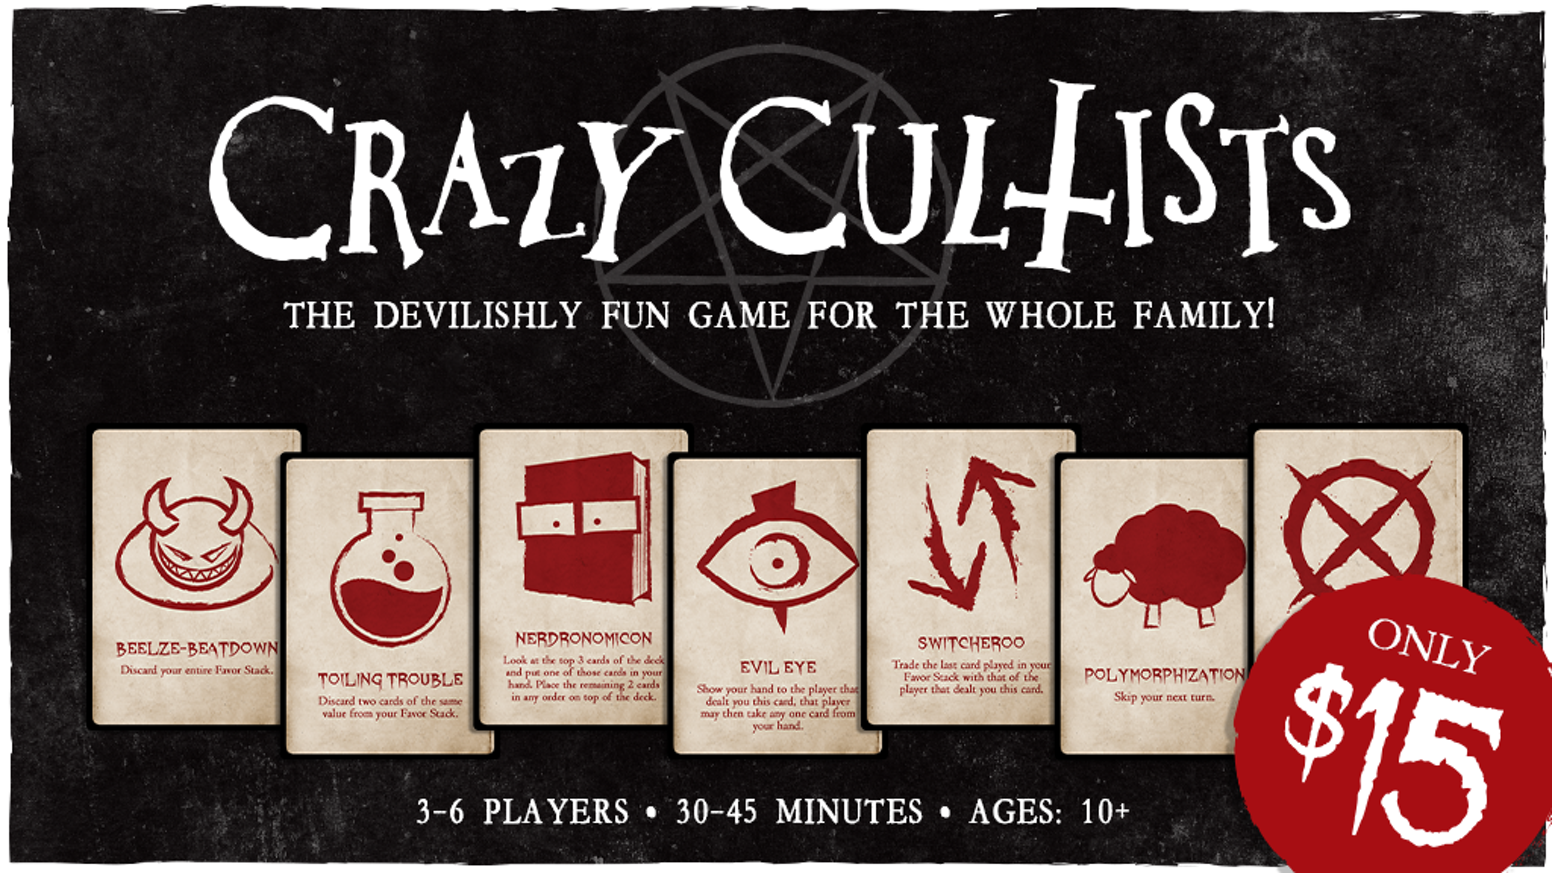 Crazy Cultists: The Devilishly Fun Game For The Whole Family by